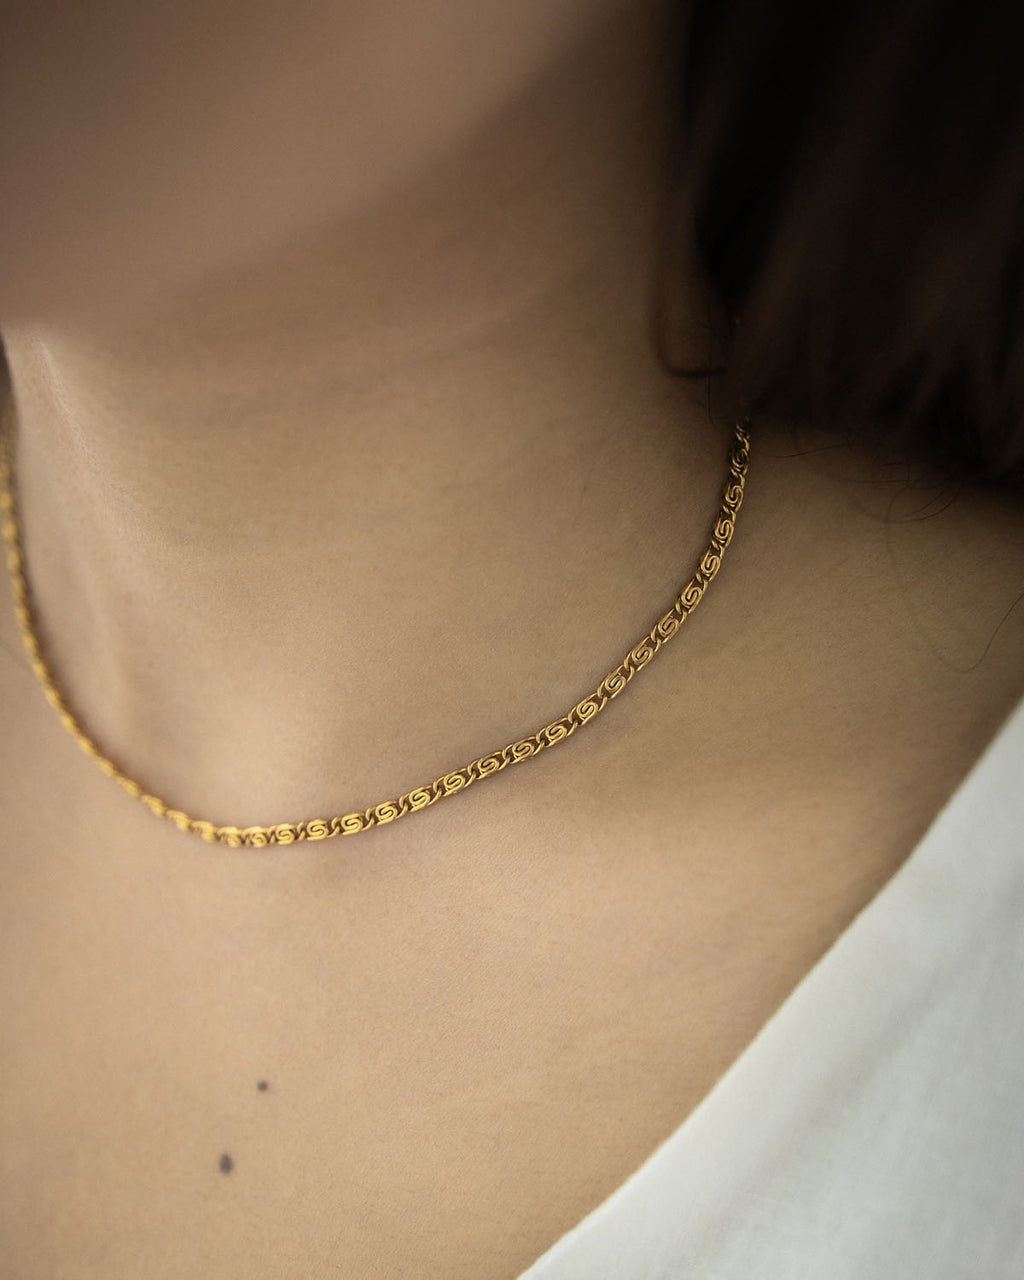 Rosette chain necklace in Gold by The Hexad